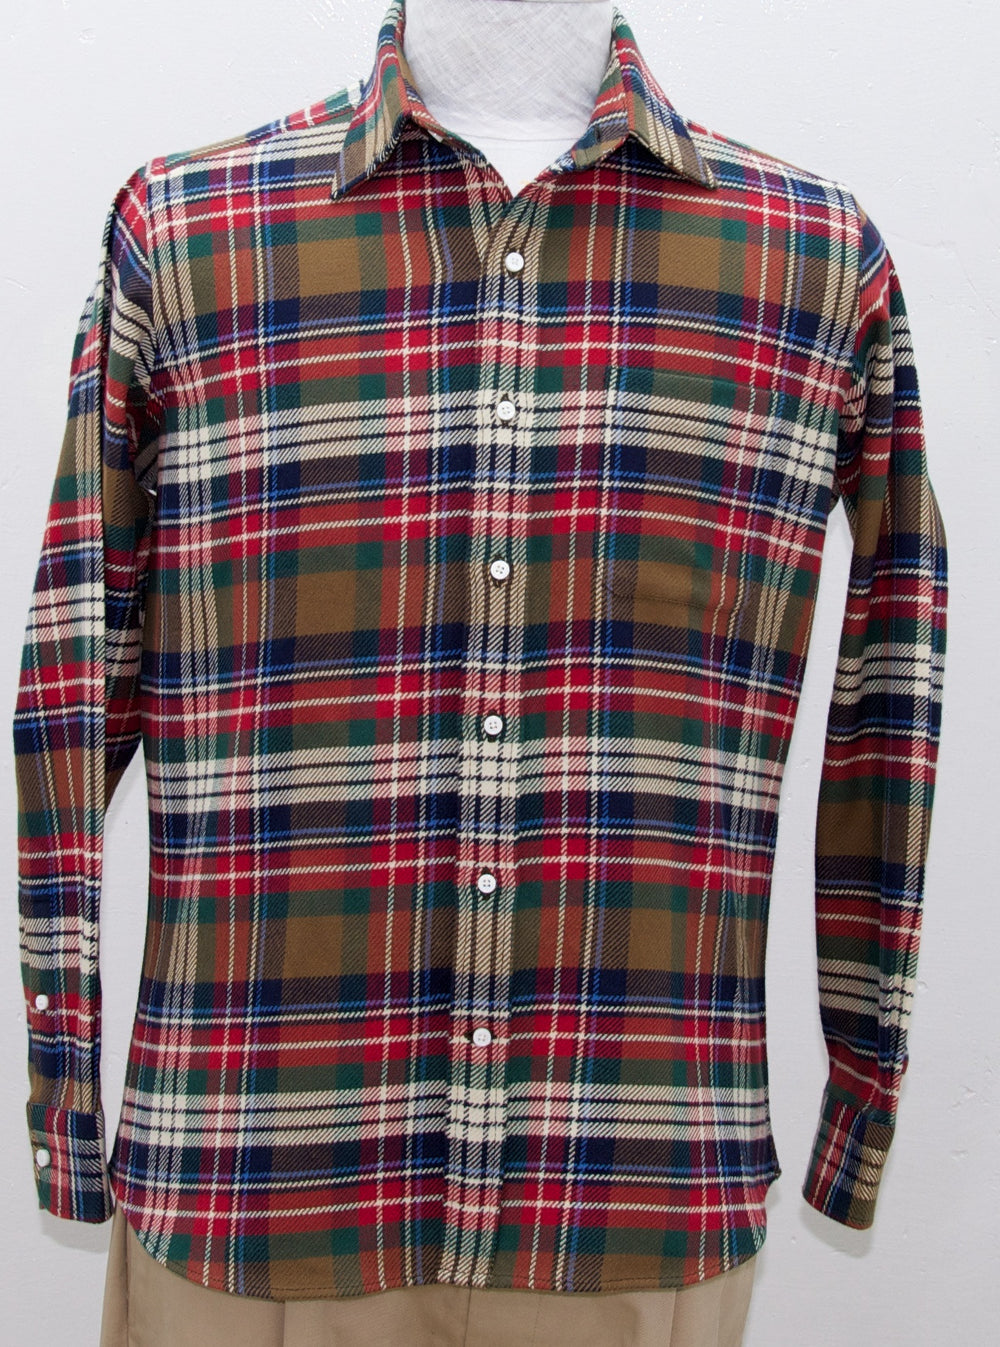 Brushed Cotton Flannel - Traditional Red Blue Green Checks